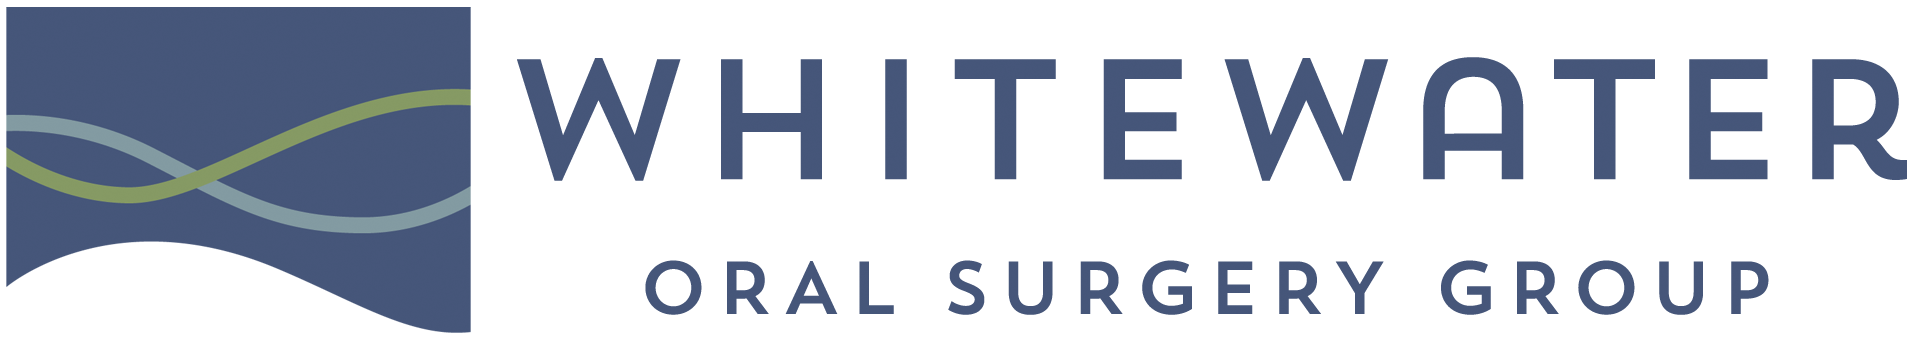 Whitewater Oral Surgery